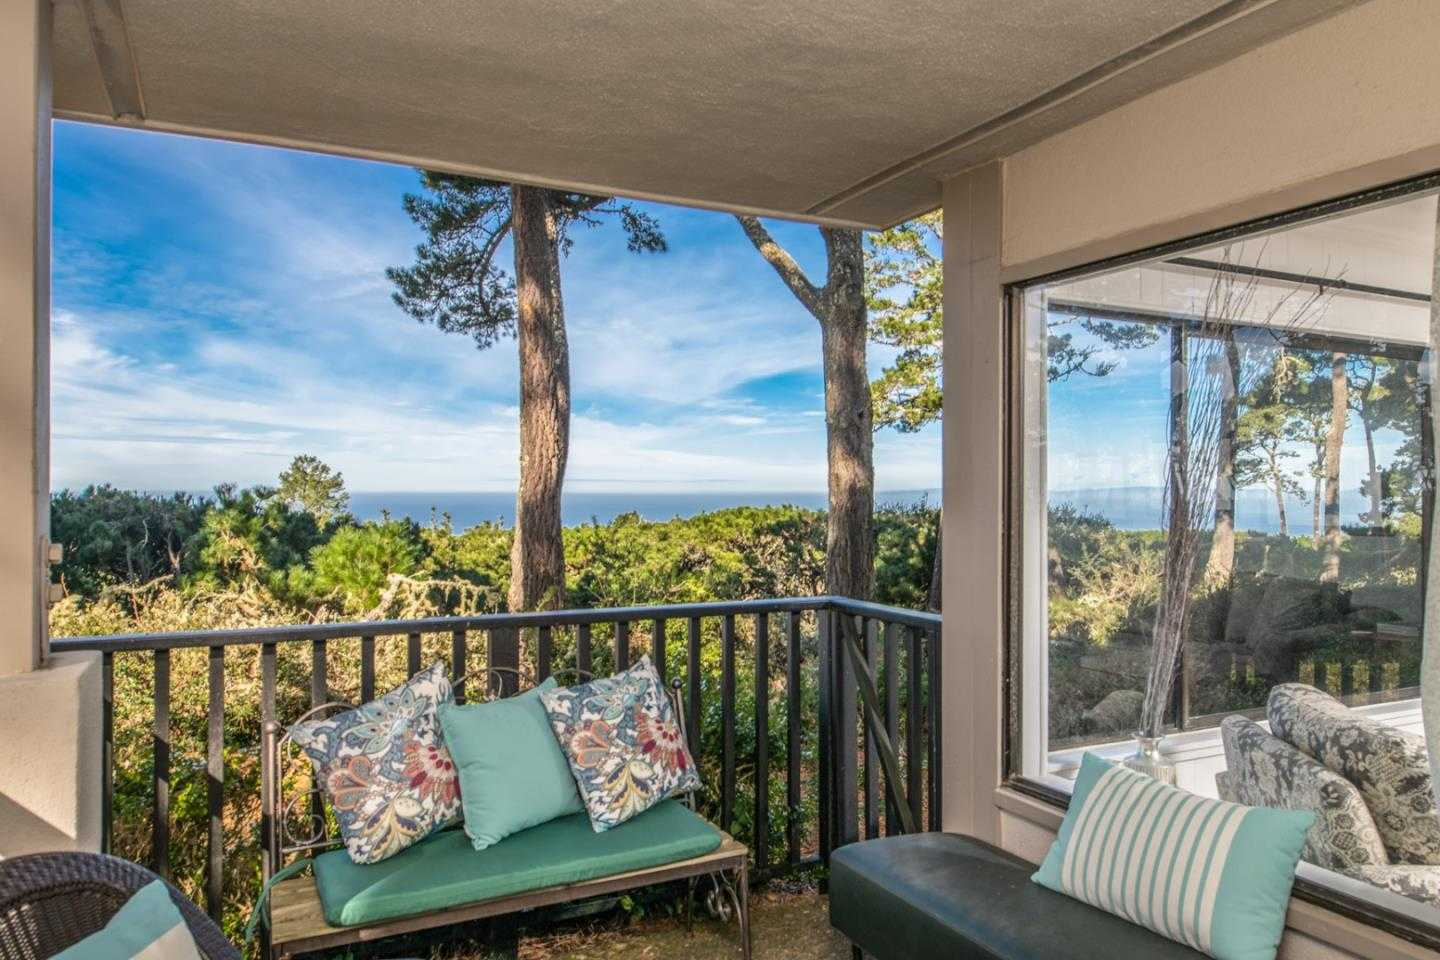 $720,000 - 2Br/2Ba -  for Sale in Pebble Beach